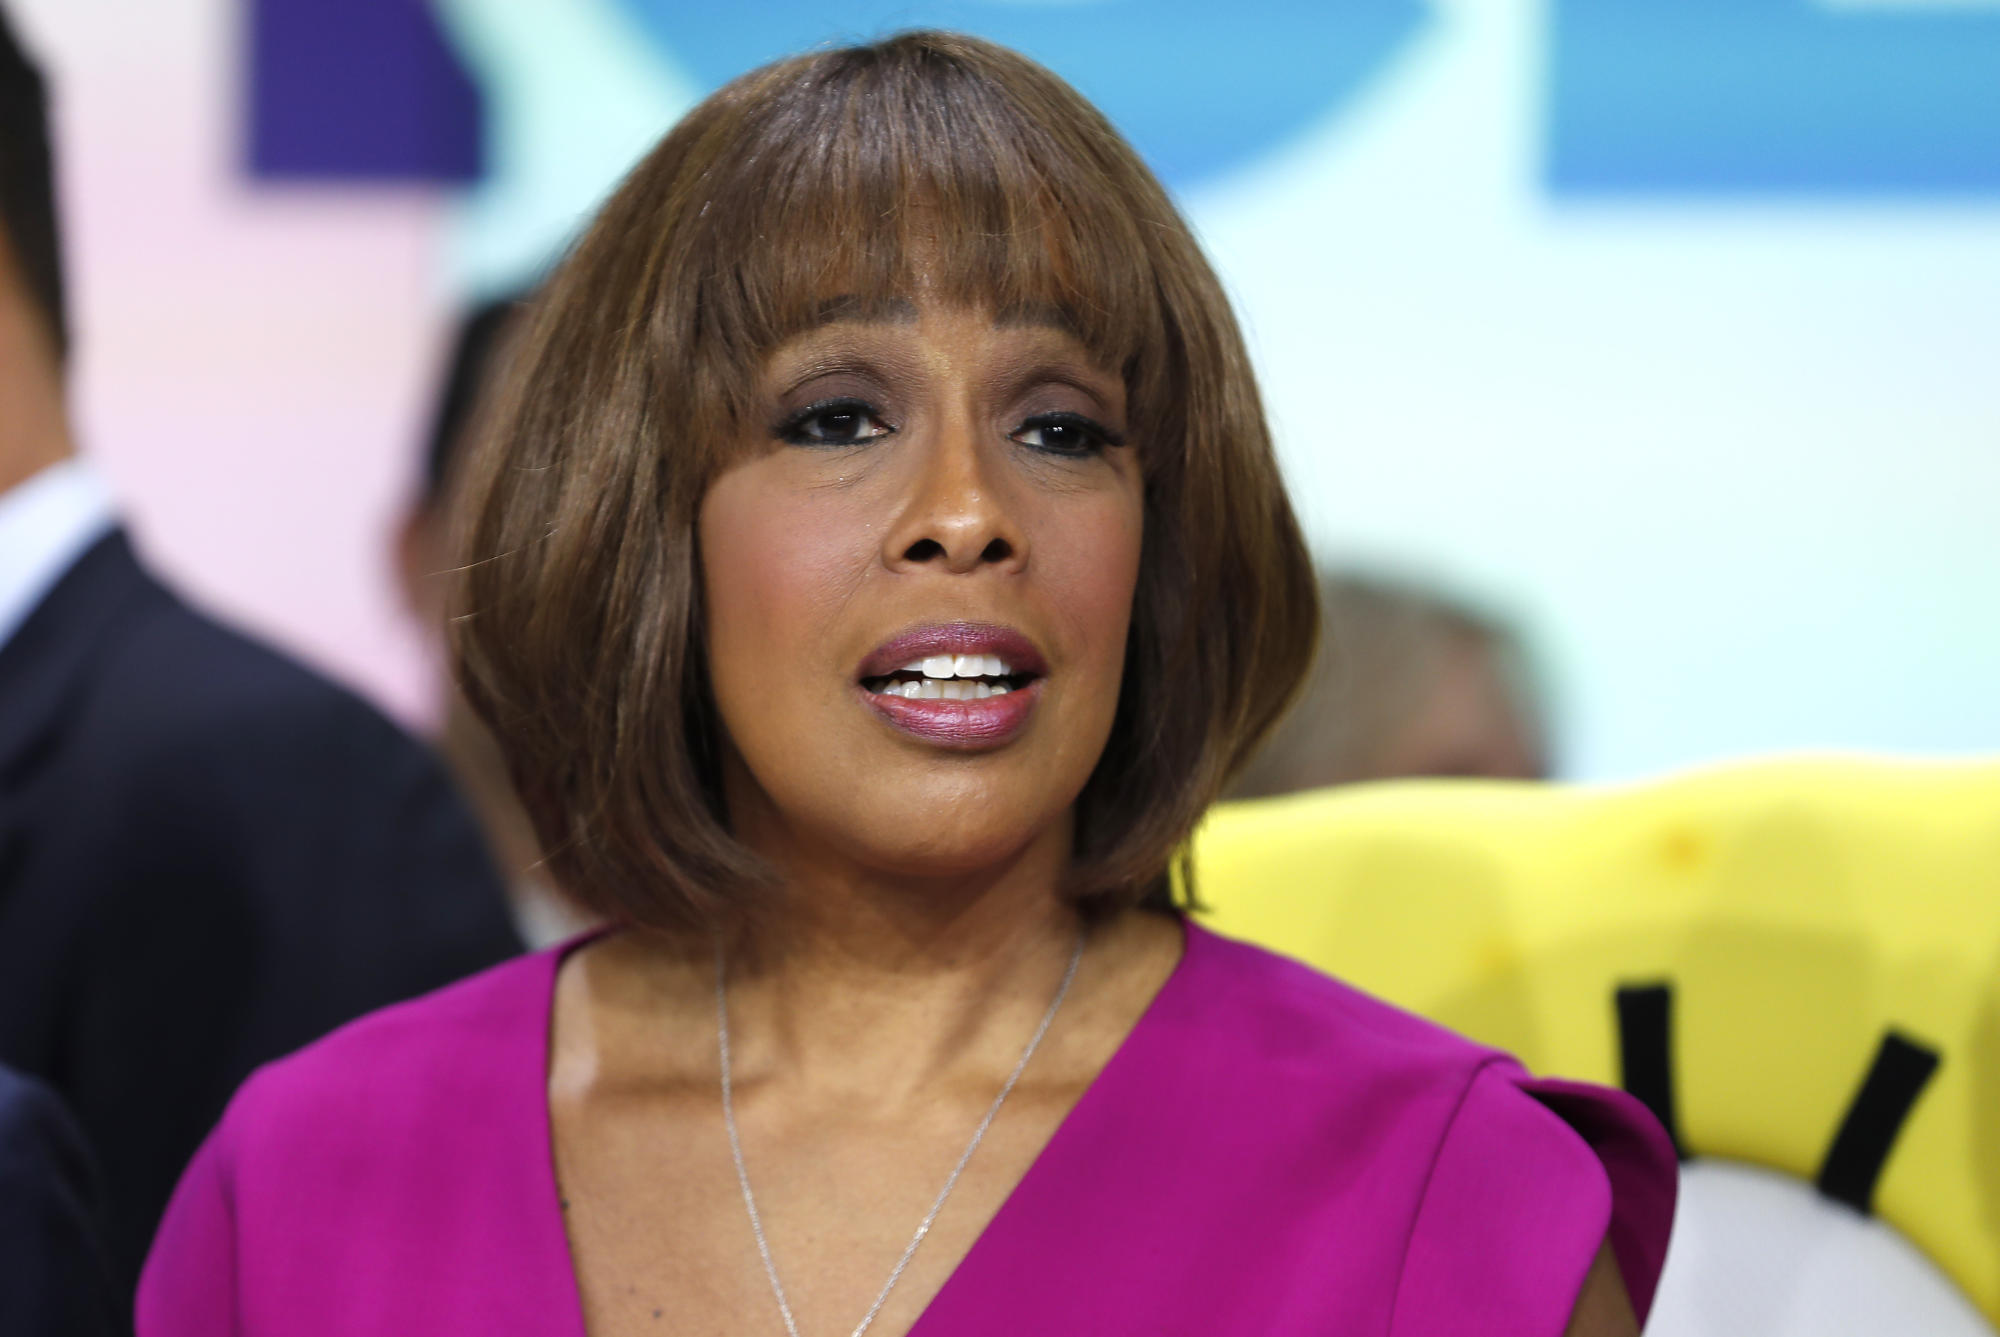 Gayle King praised for 'relatable' post about putting on pounds during quarantine as she shares scale photos: 'The weight struggle is real!'